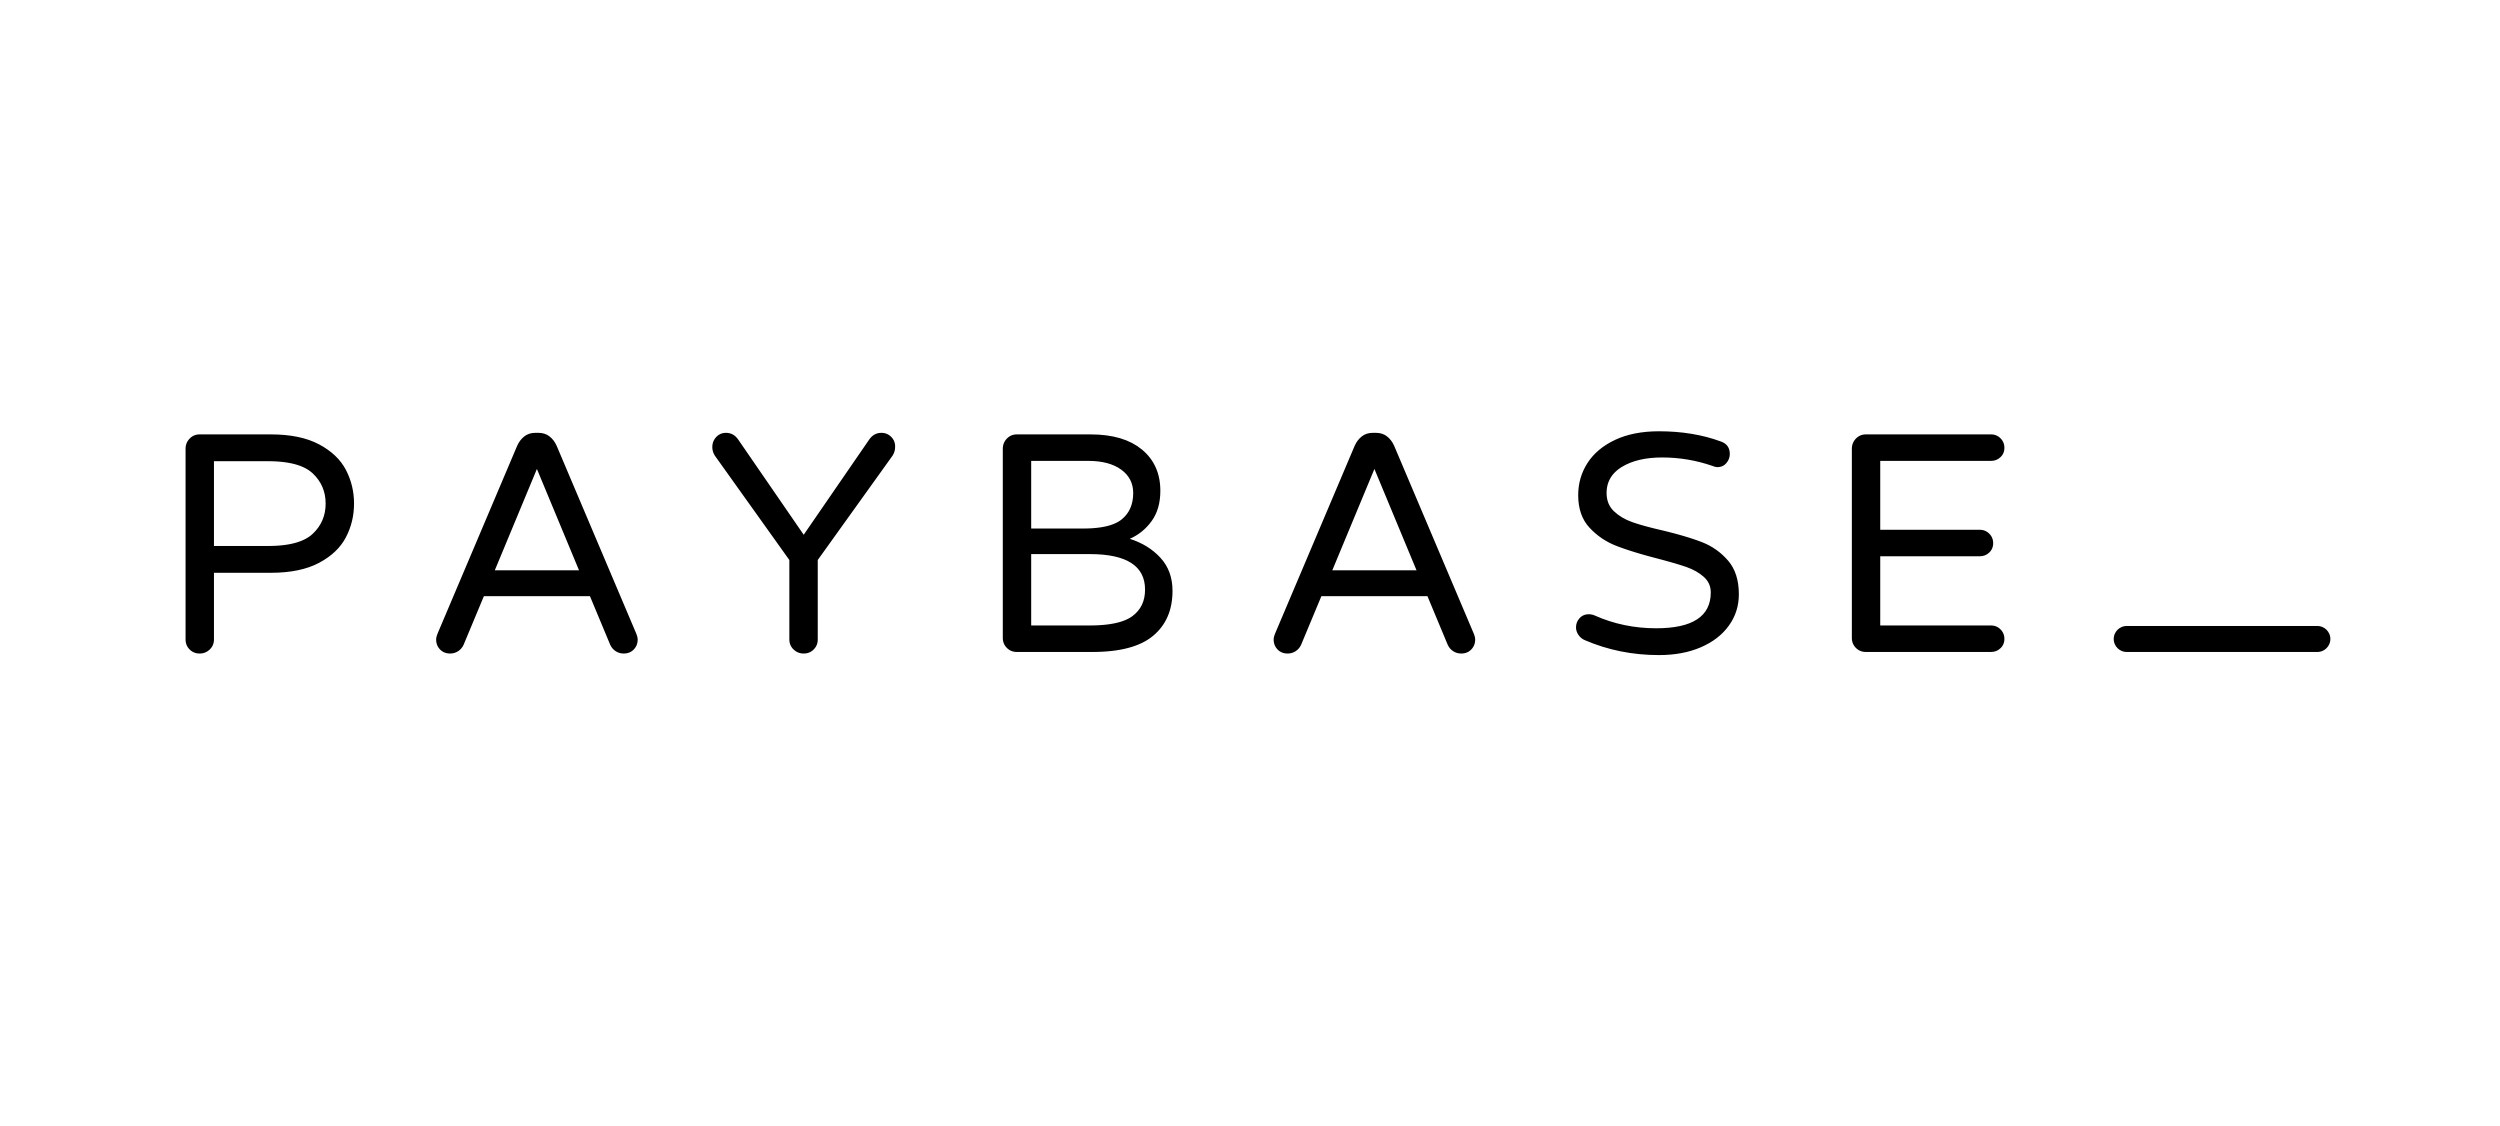 Paybase to Host Collaborative Workshop and Networking Event for Marketplaces and Gig/Sharing Economy Platforms